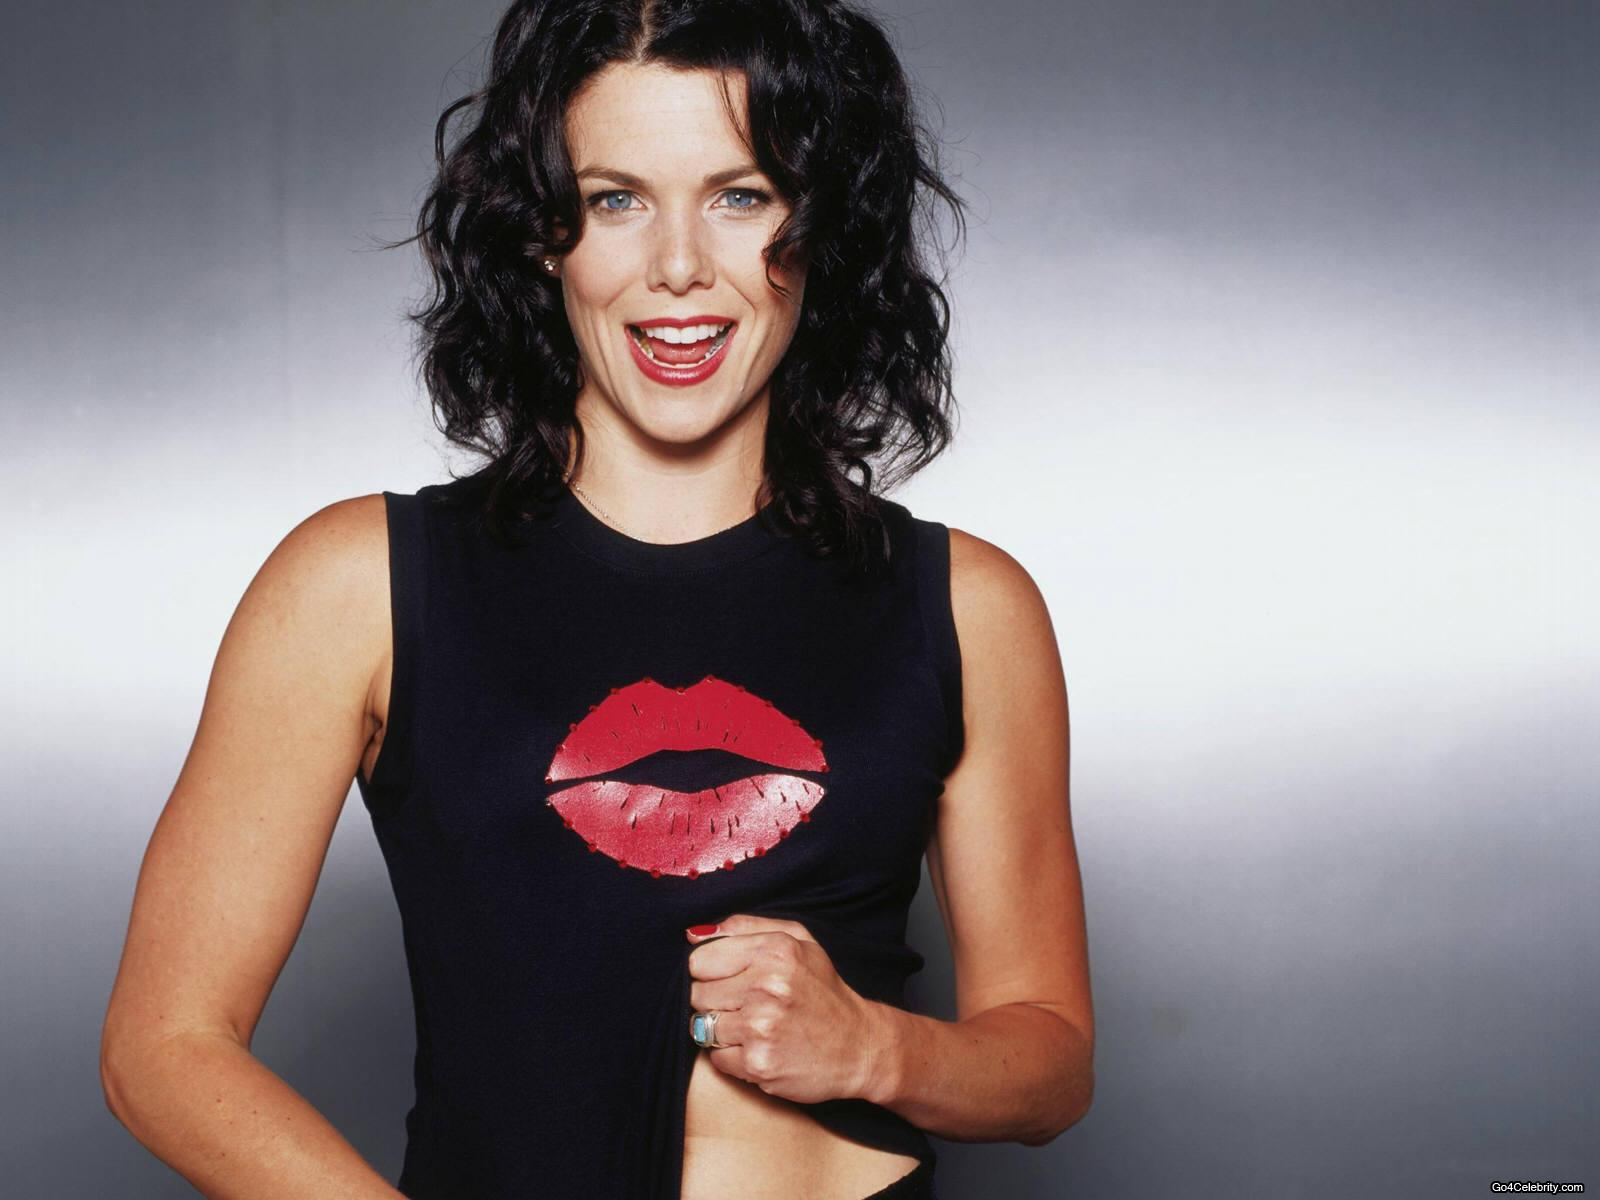 Iphone Wallpaper For Teenage Girl Lauren Graham Wallpapers High Resolution And Quality Download